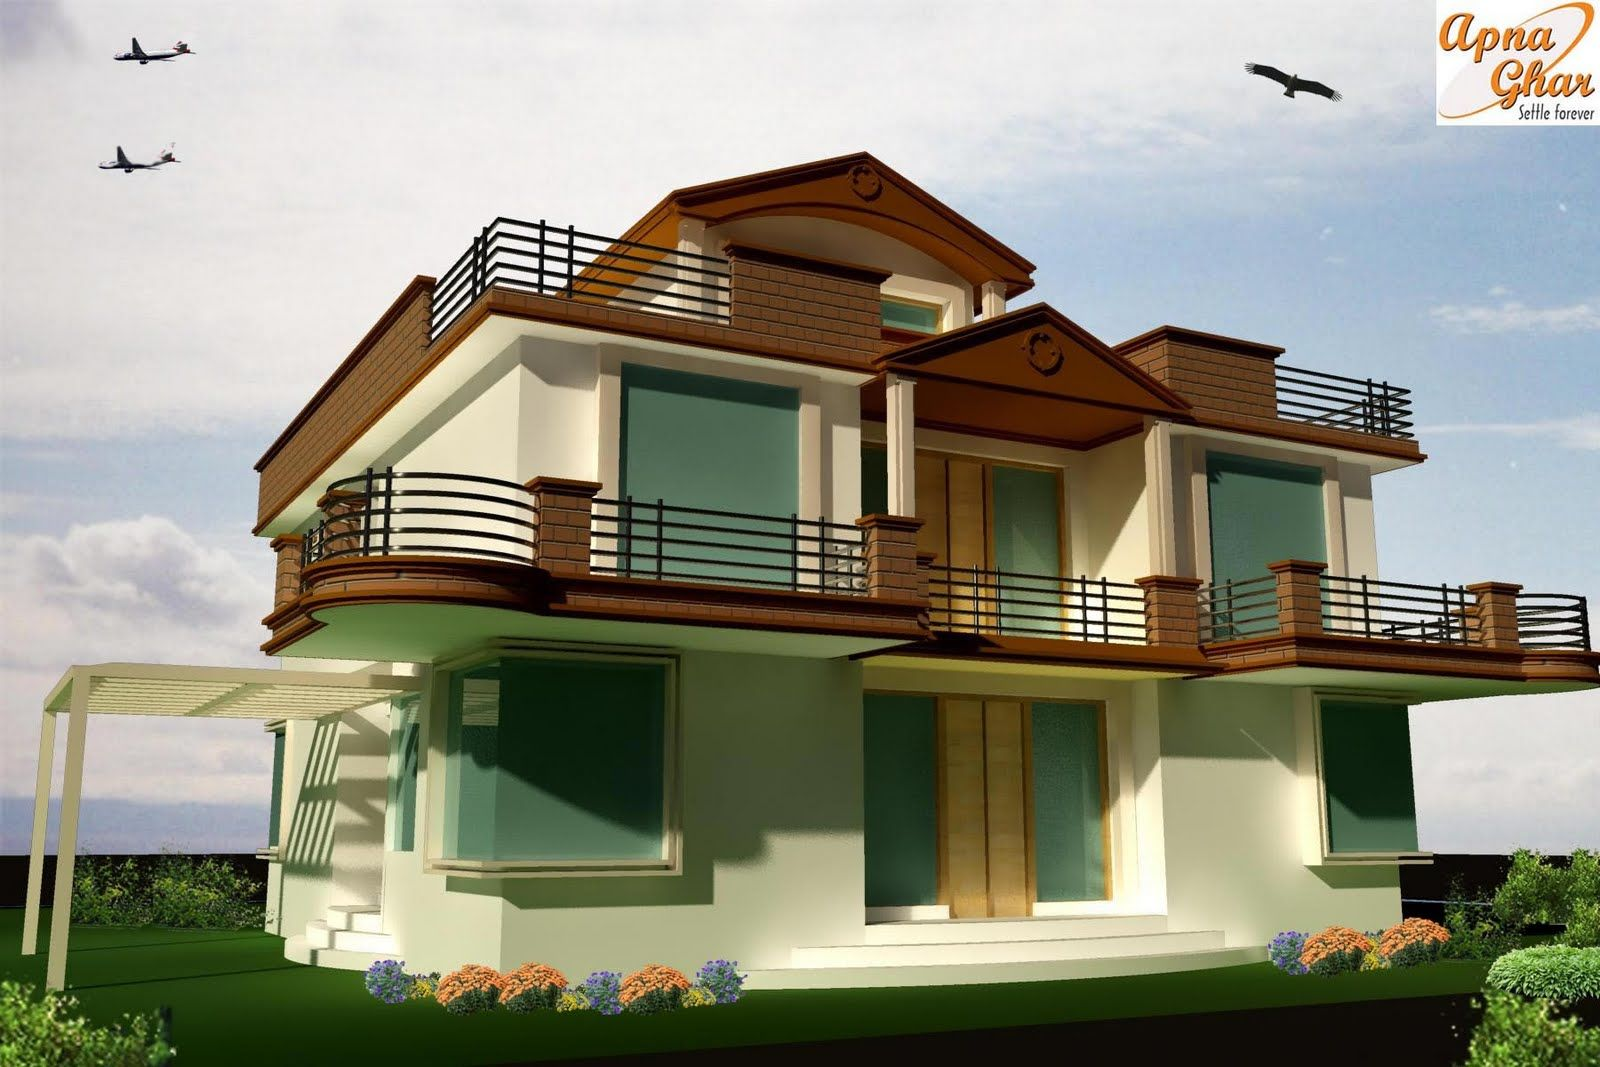 Architectural designs modern architectural house plans for New architecture design house